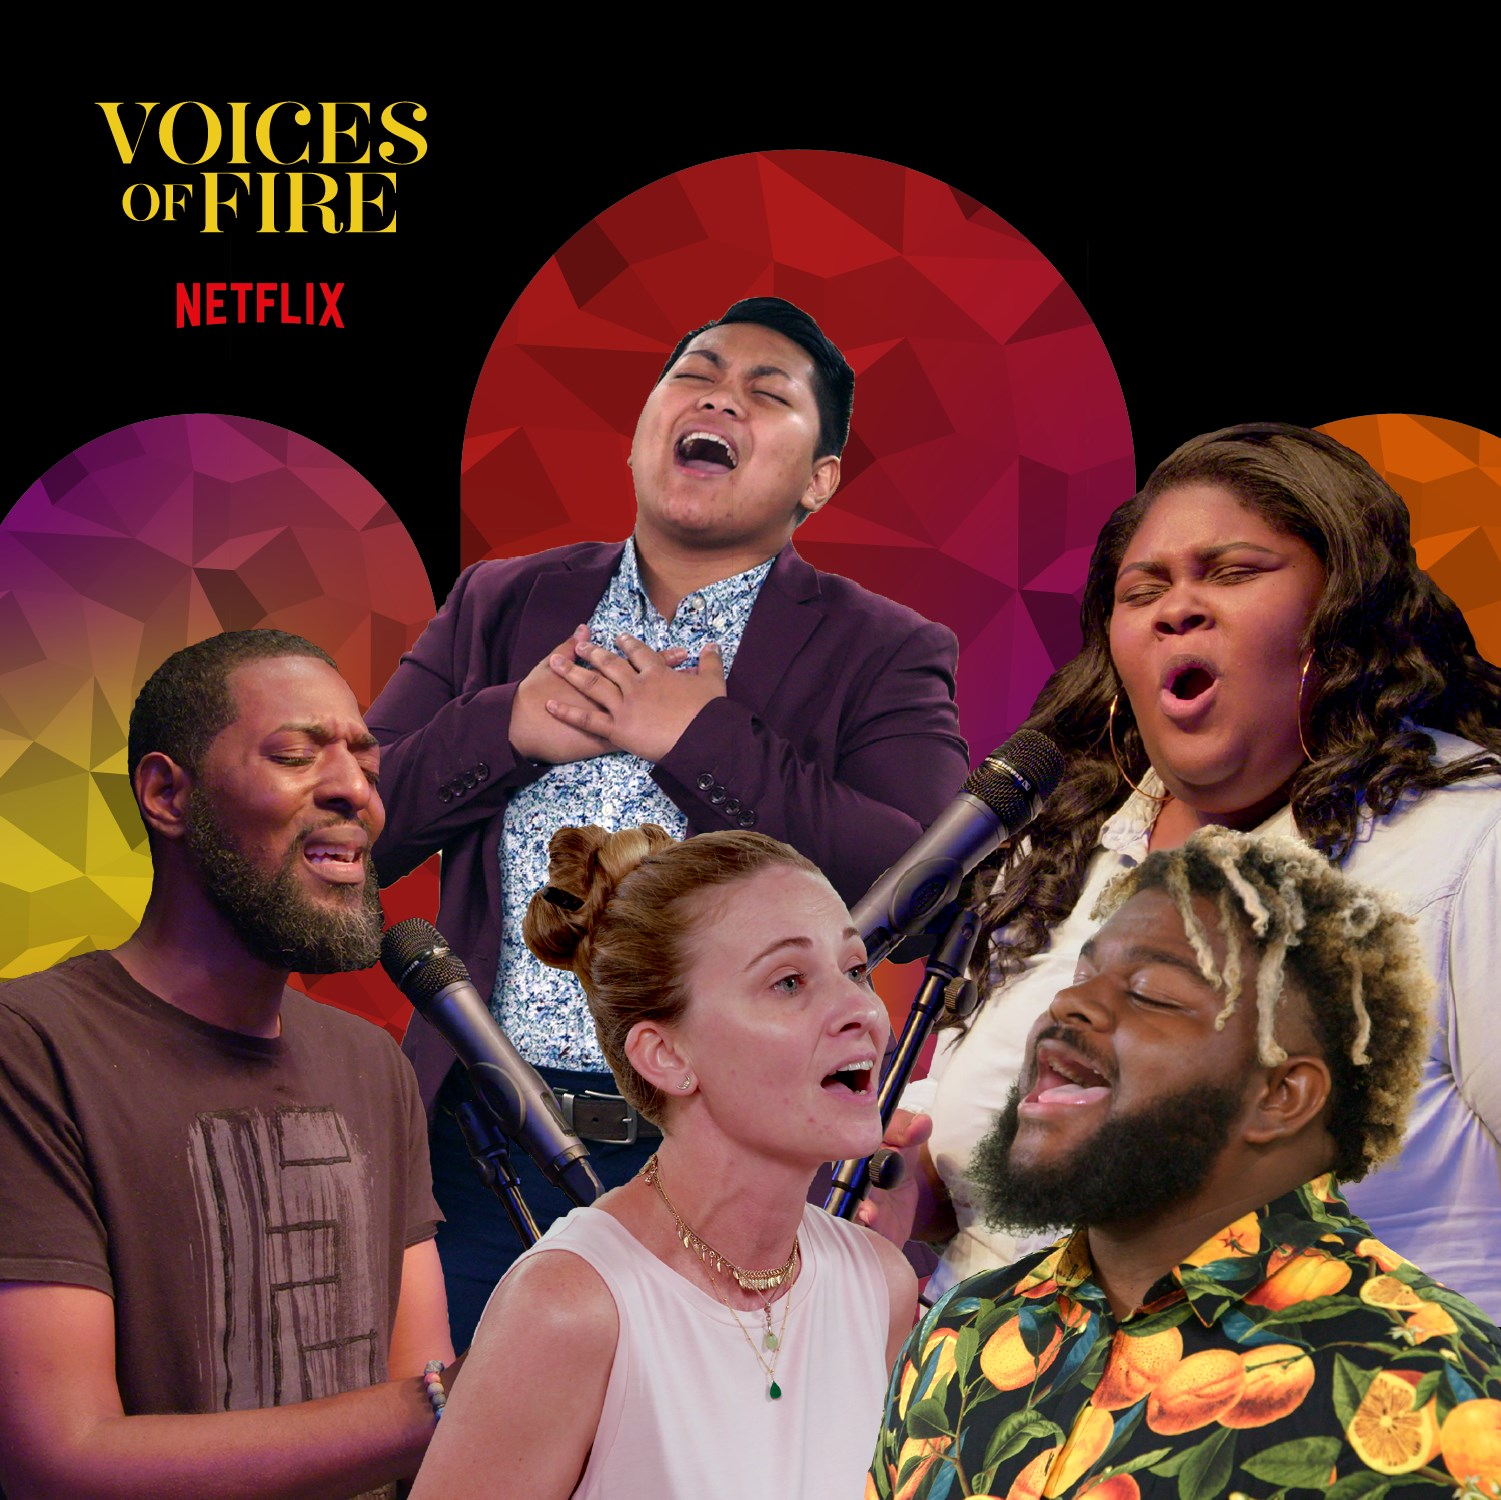 Pharrell Williams joins pastor uncle to build inspiring gospel choir in Netflix series 'Voices of Fire'